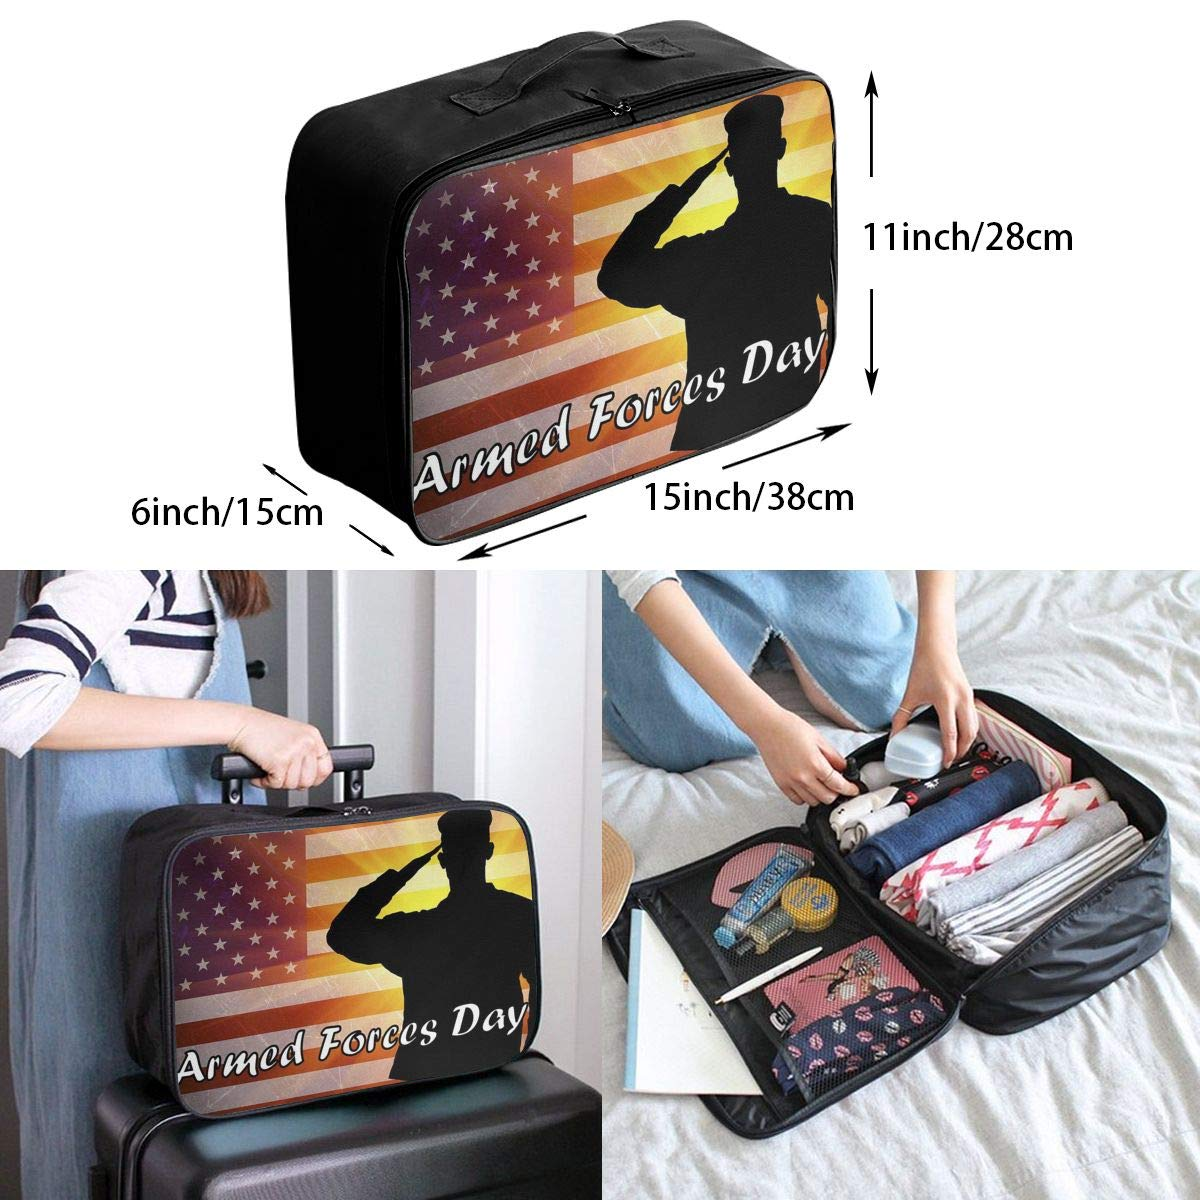 Travel Luggage Duffle Bag Lightweight Portable Handbag Armed Forces Day Large Capacity Waterproof Foldable Storage Tote